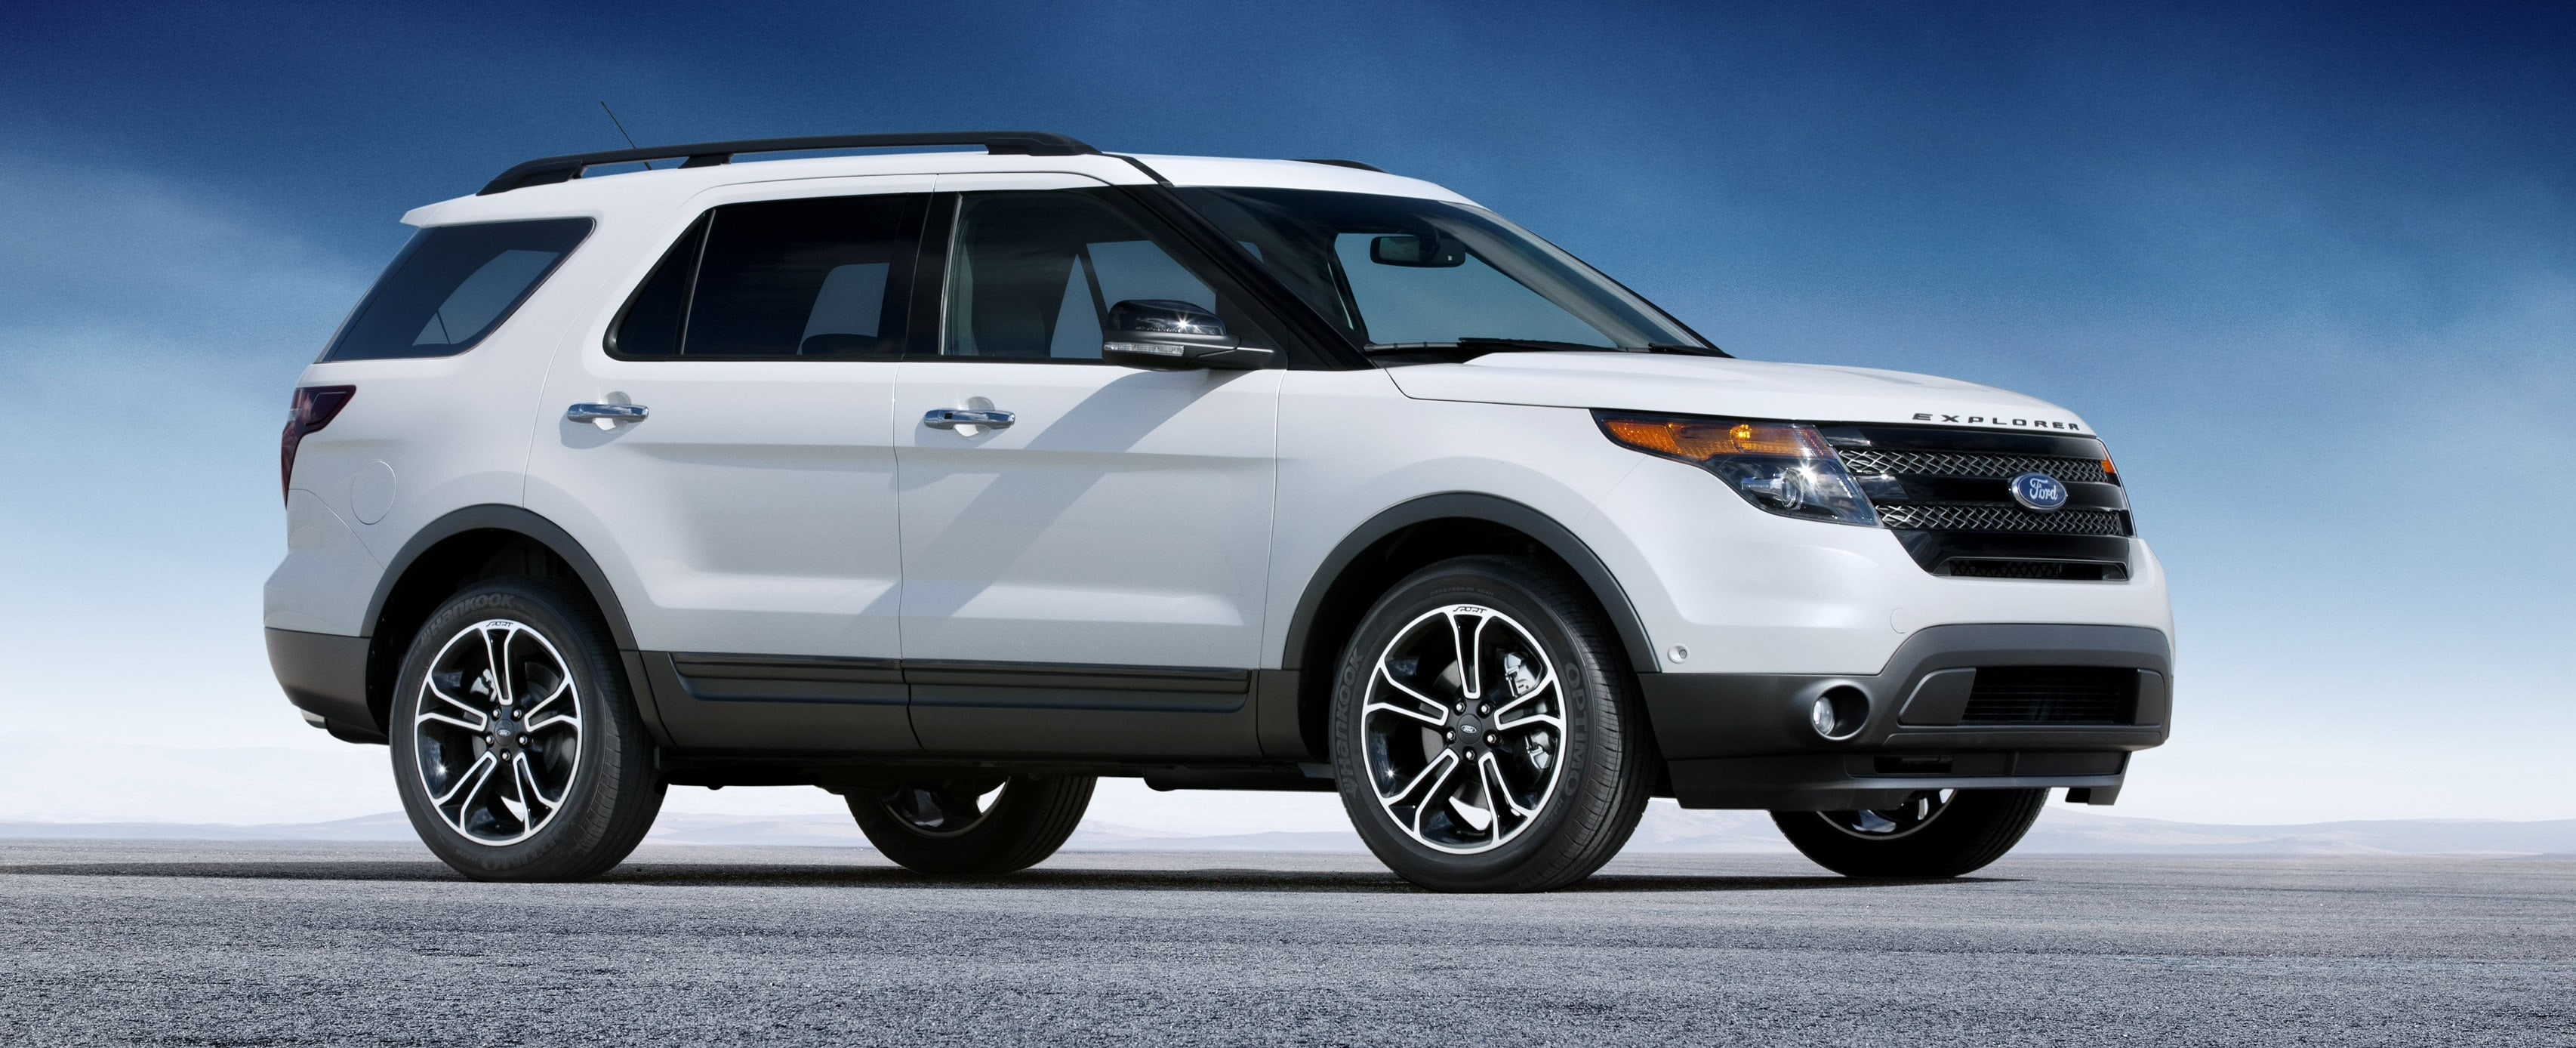 Ford Explorer Wallpapers hd